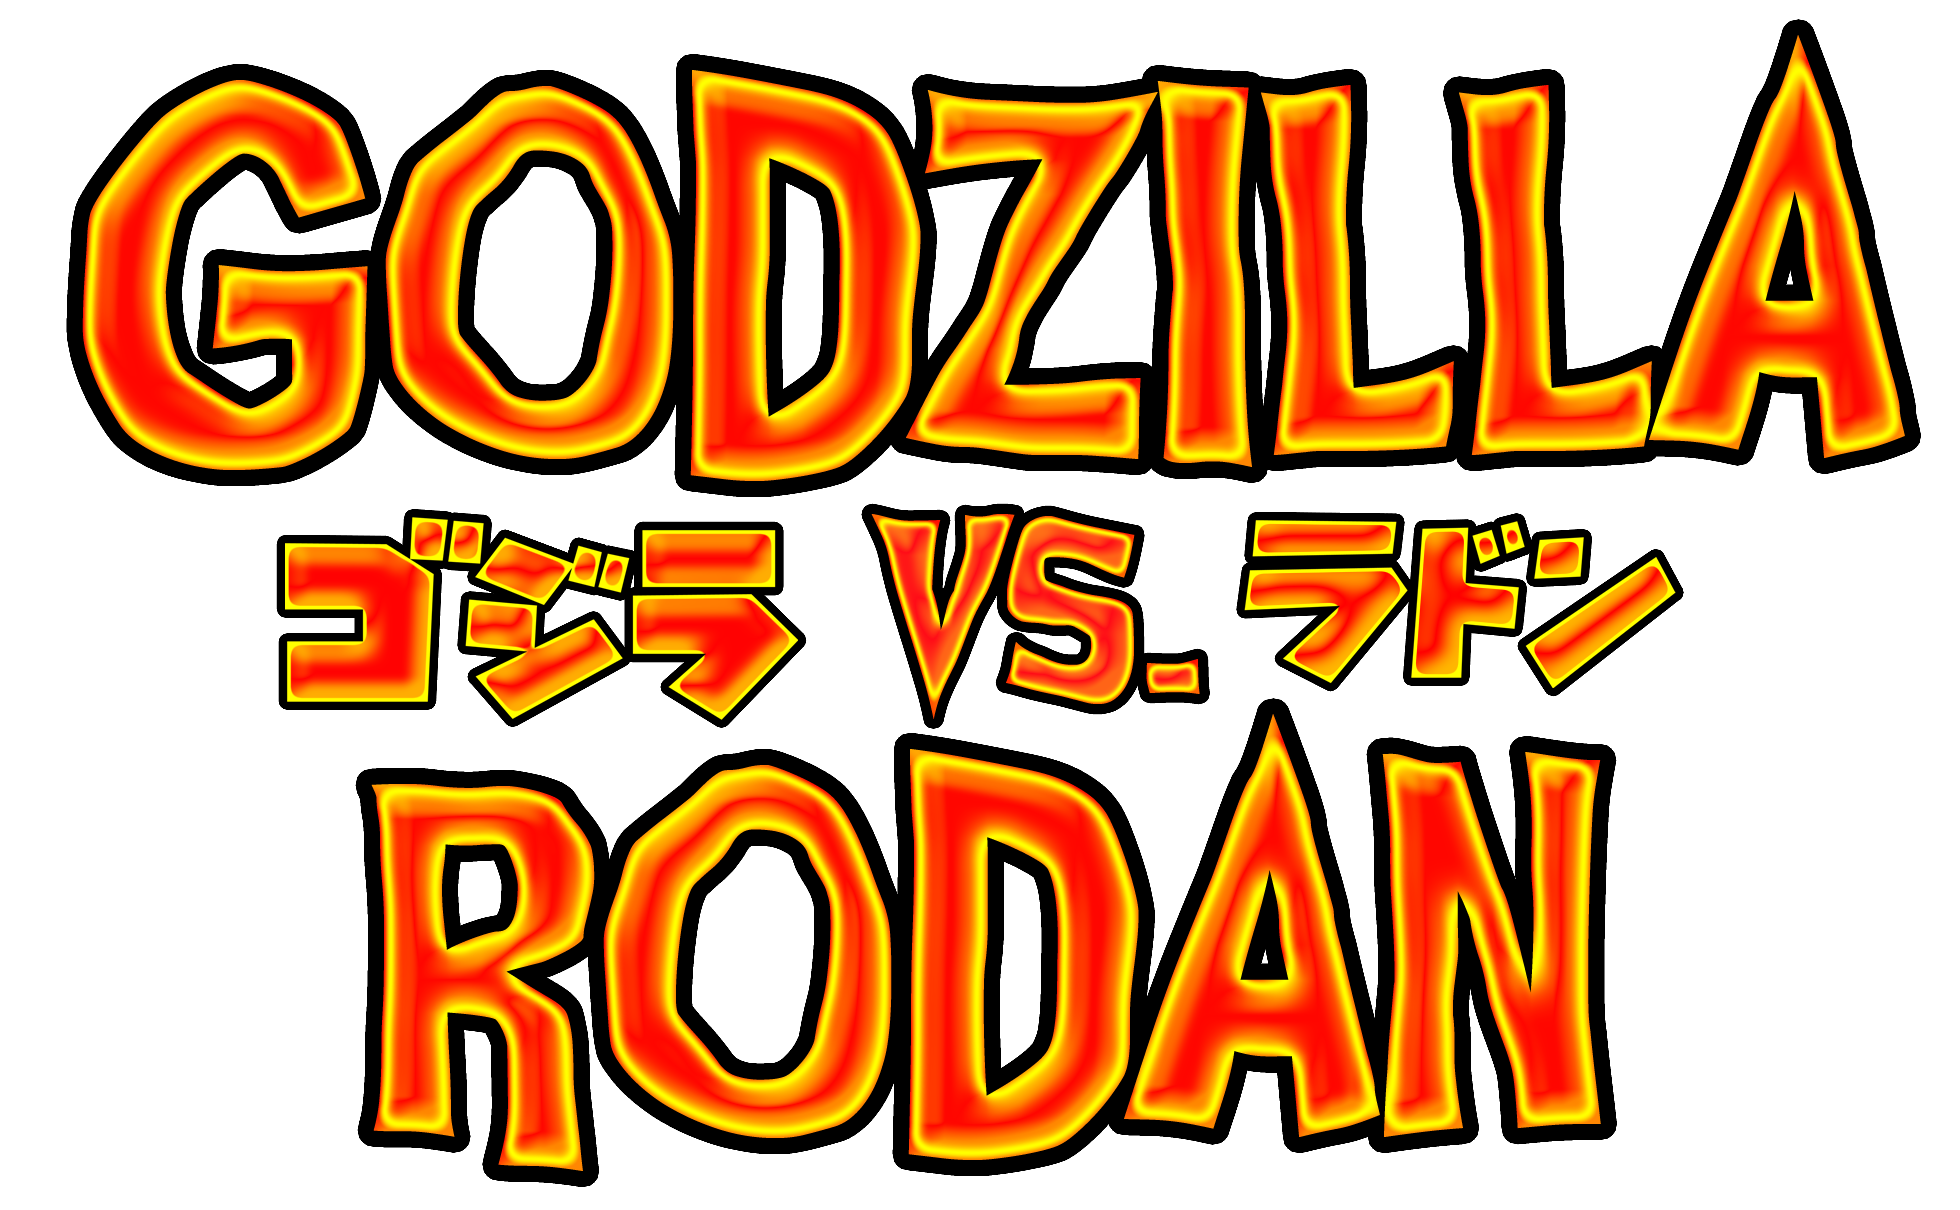 godzilla vs rodan and fields png logo #5657